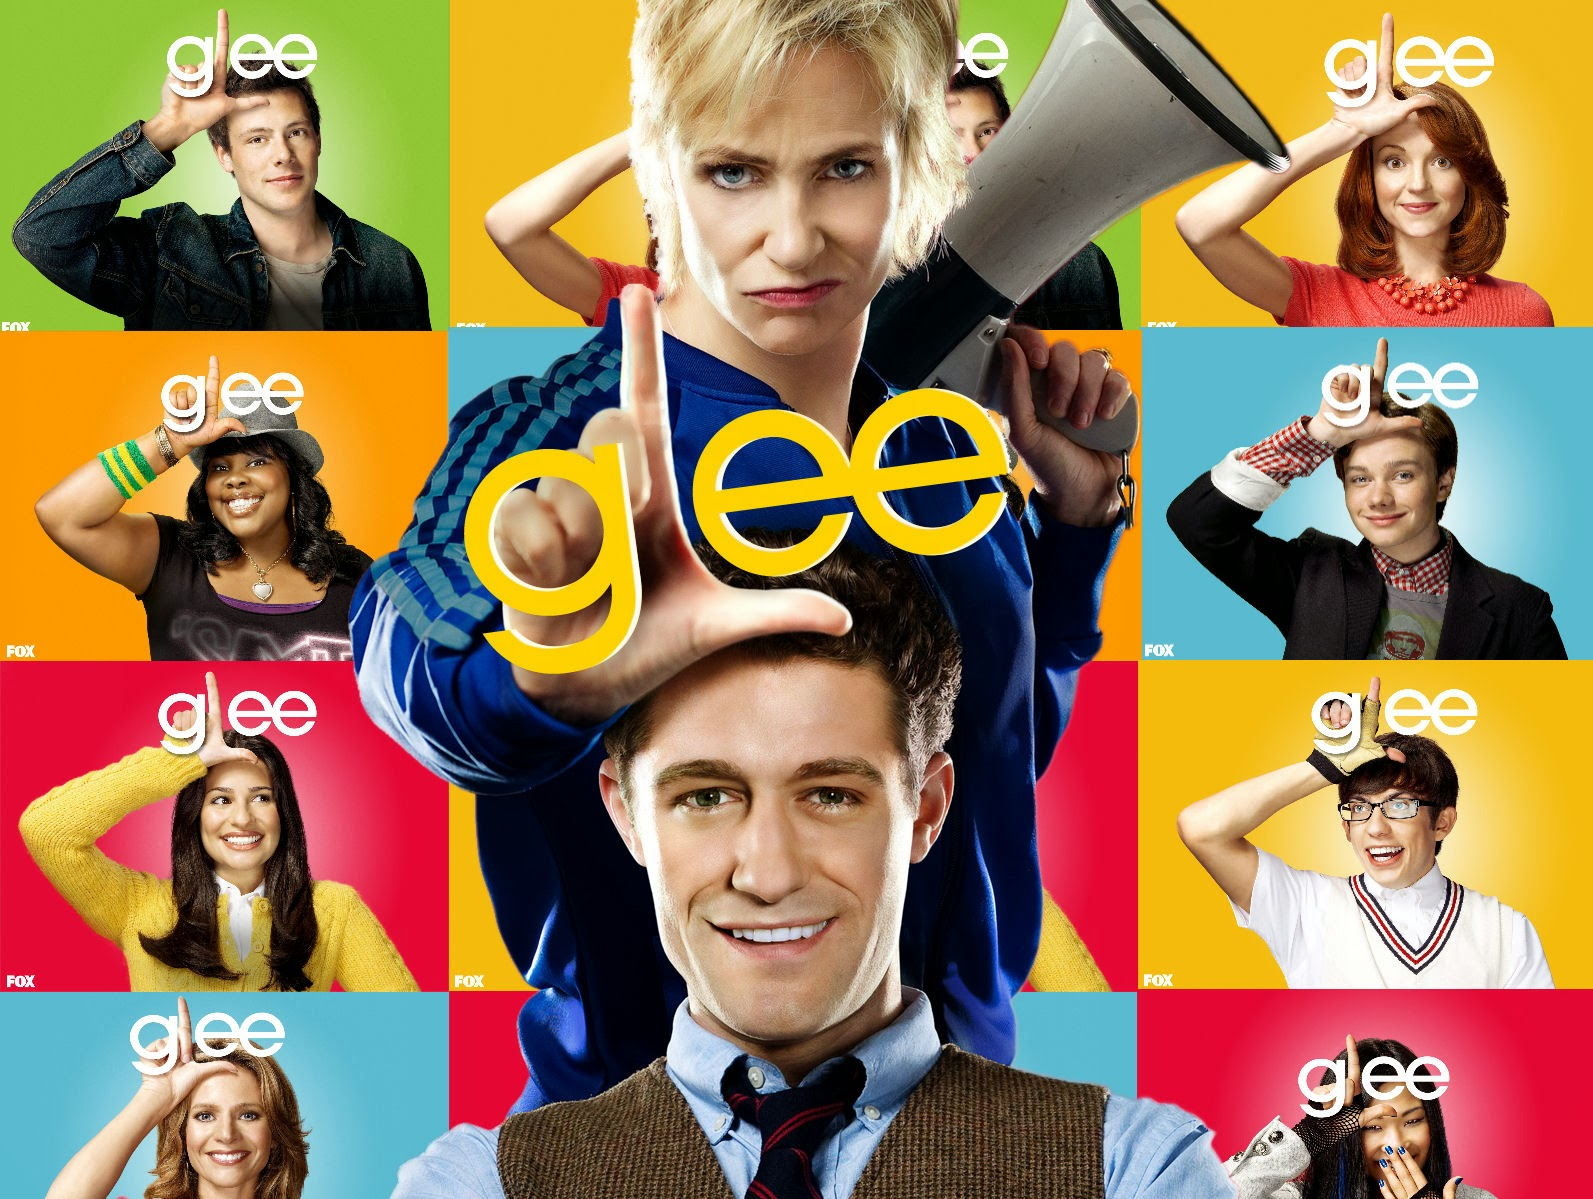 Glee Archives - Página 4 de 29 - Series Adictos